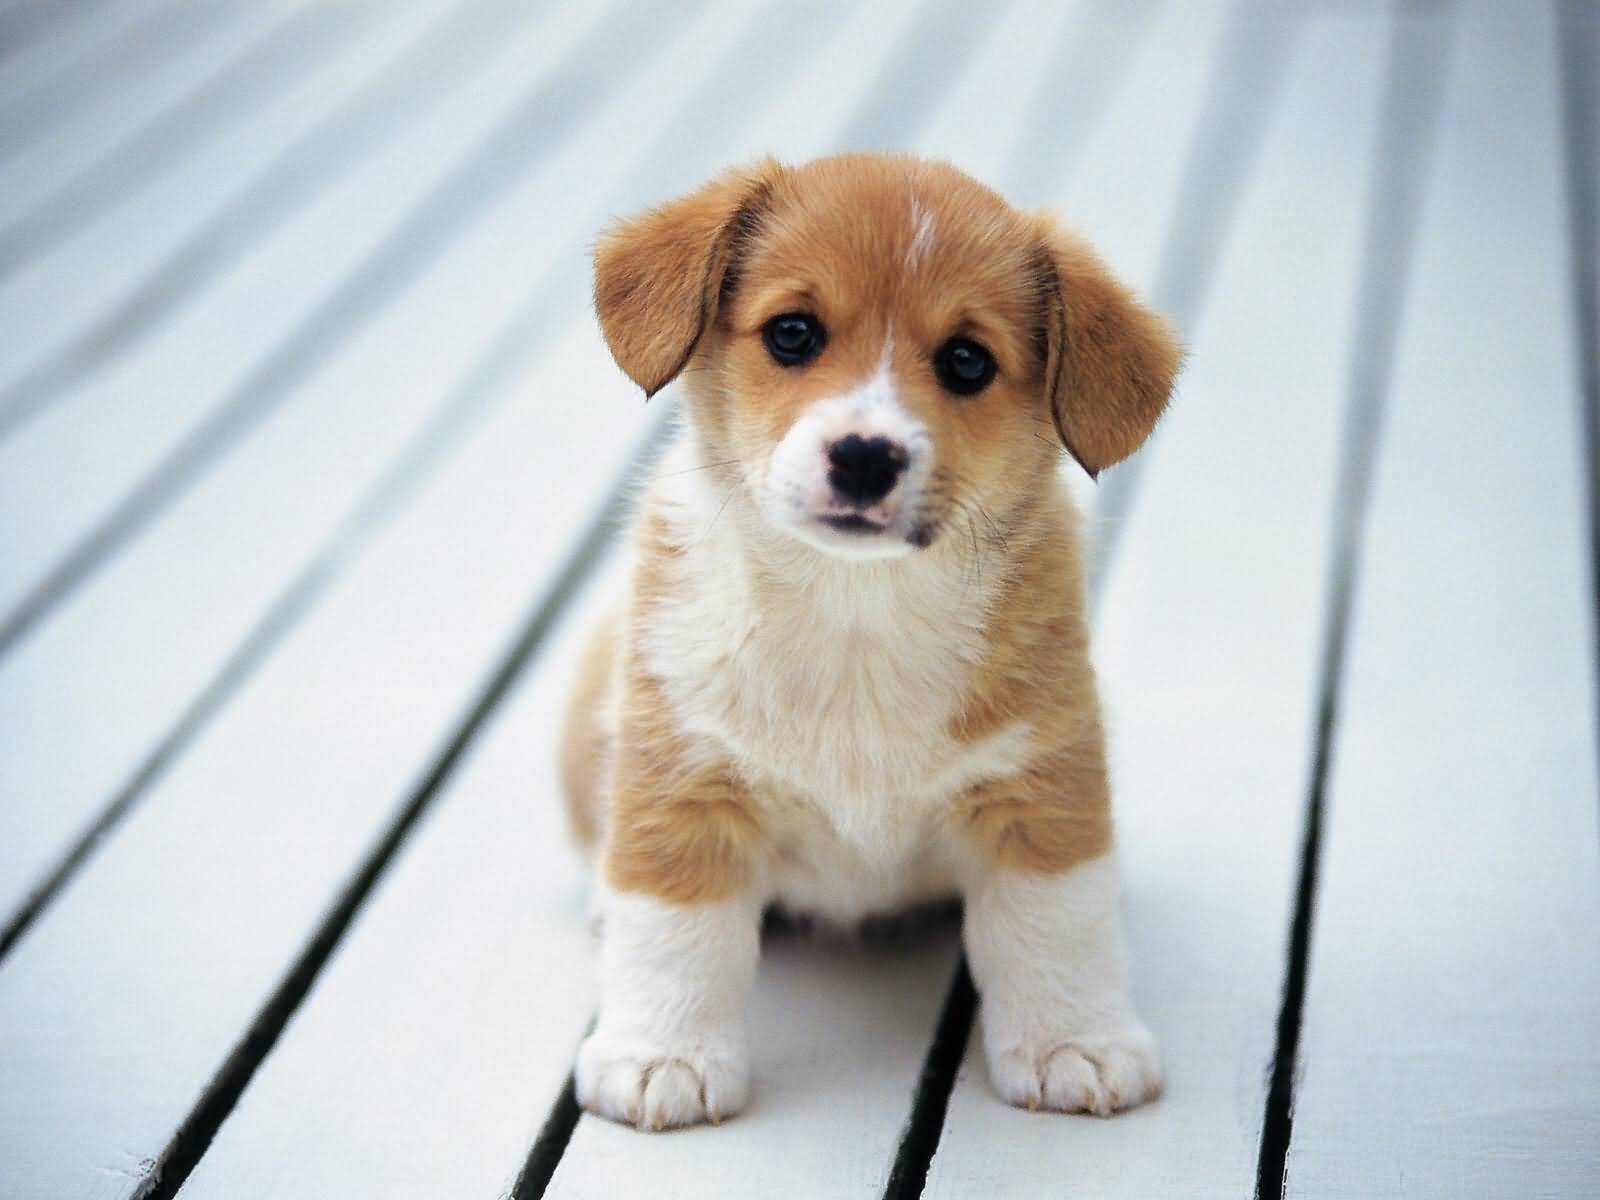 Cute beagle puppy sitting picture voltagebd Image collections